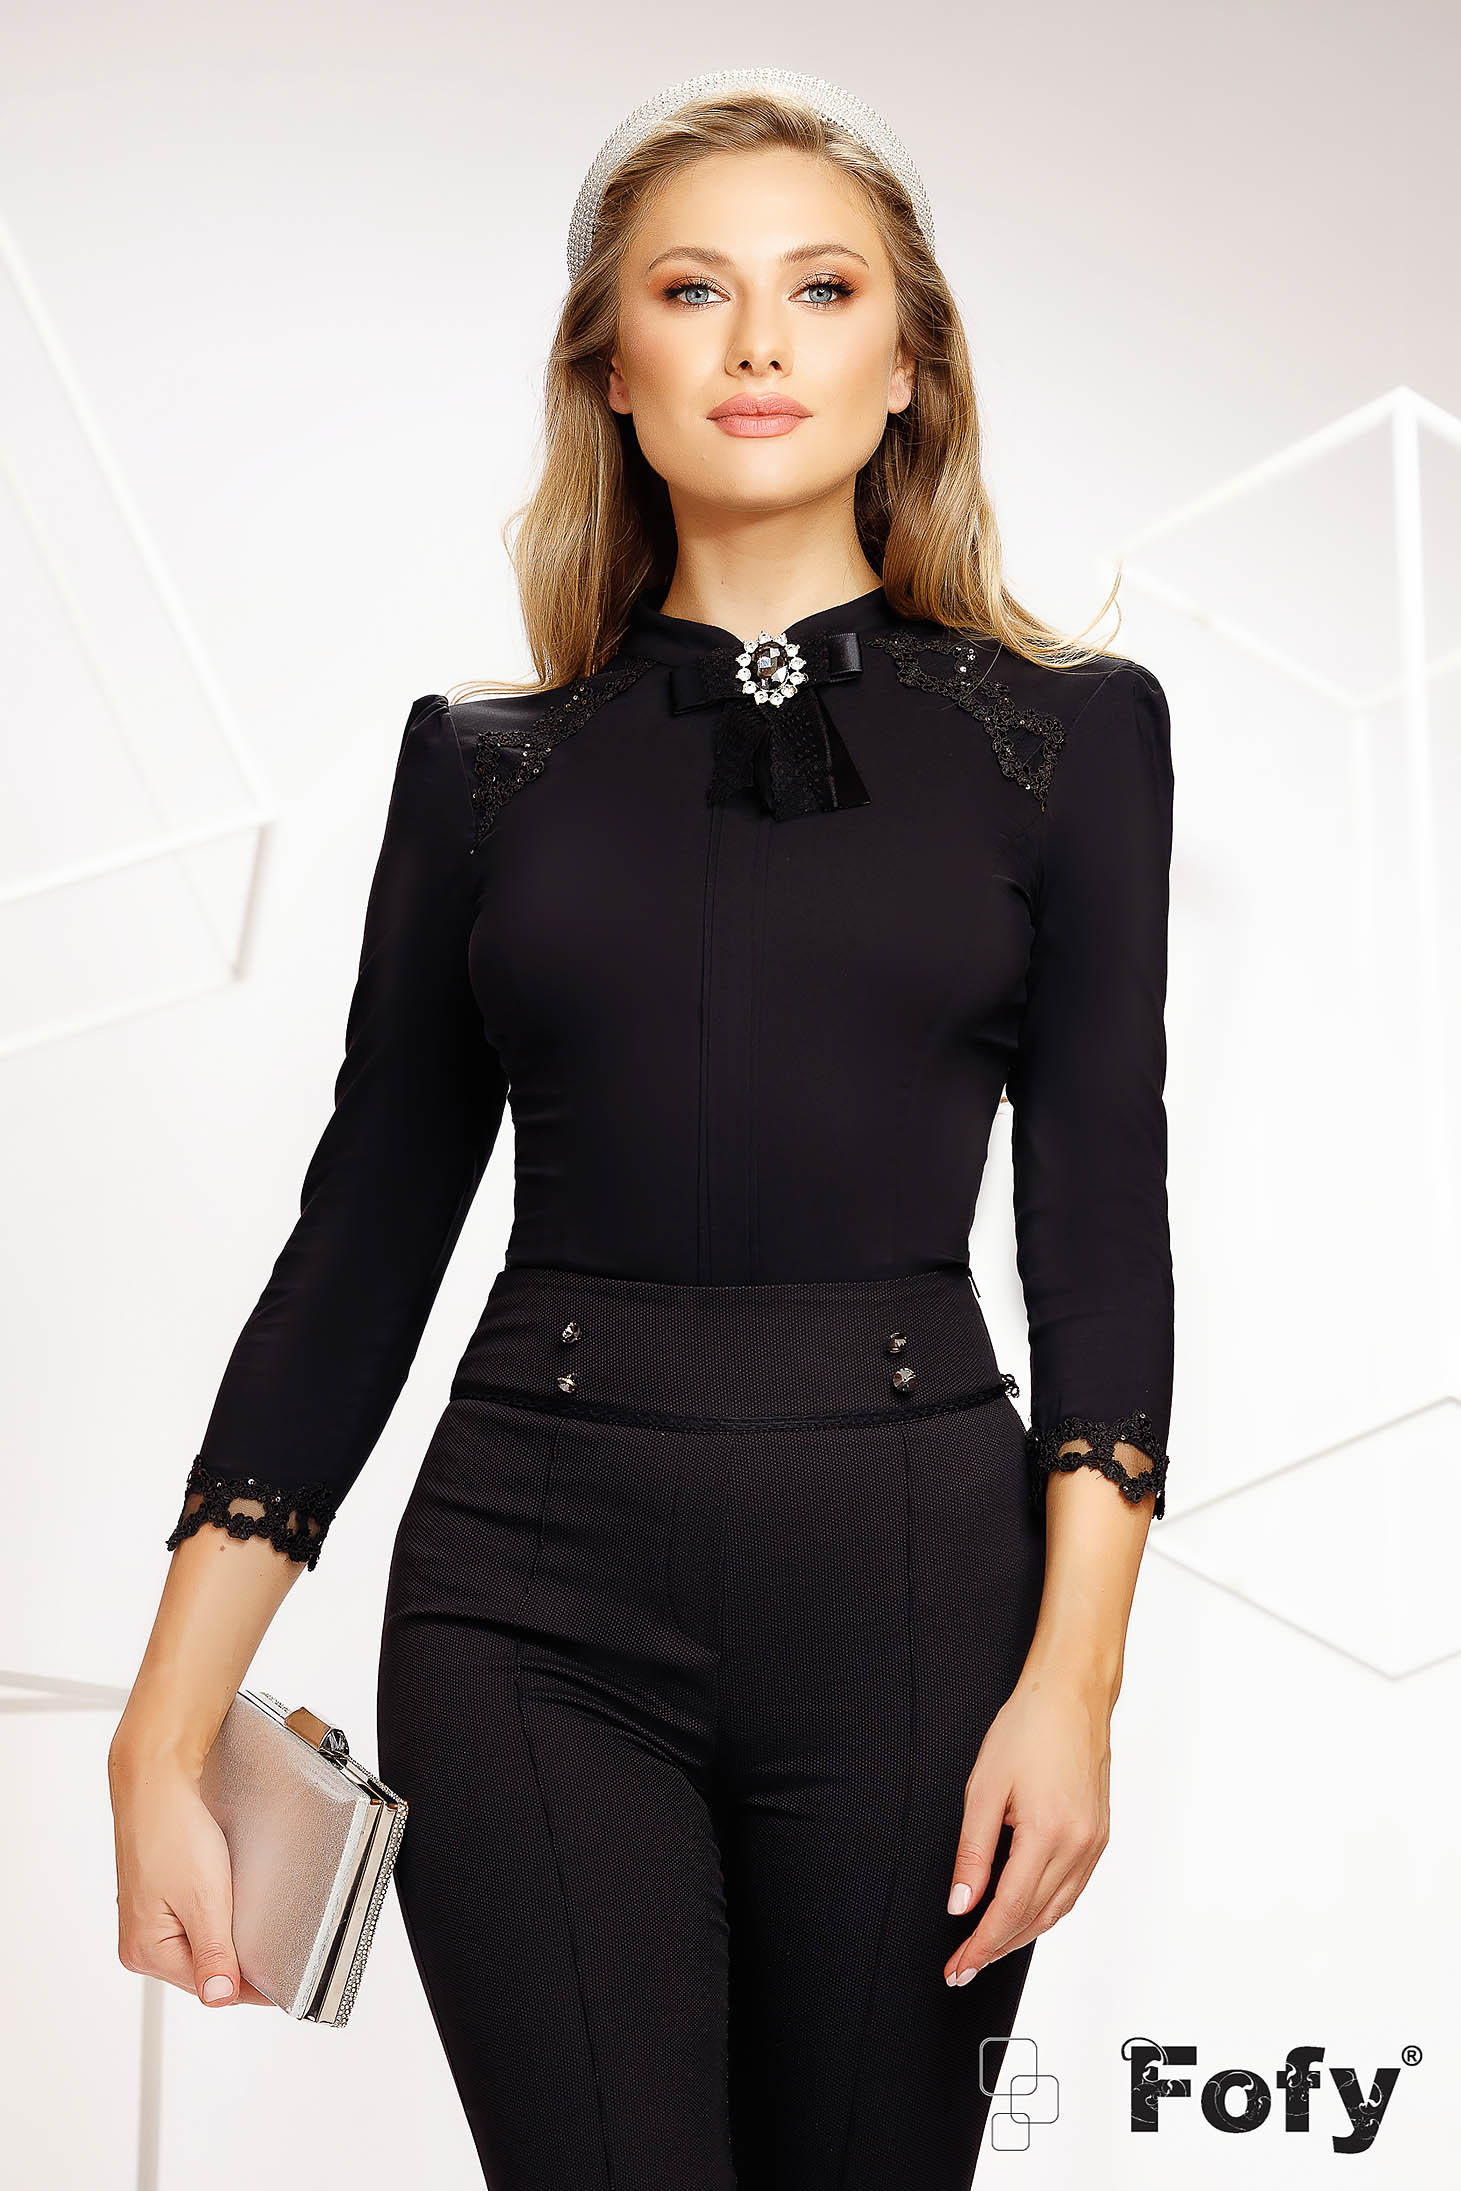 Black women`s shirt elastic cotton office accessorized with breastpin with embroidery details with sequin embellished details